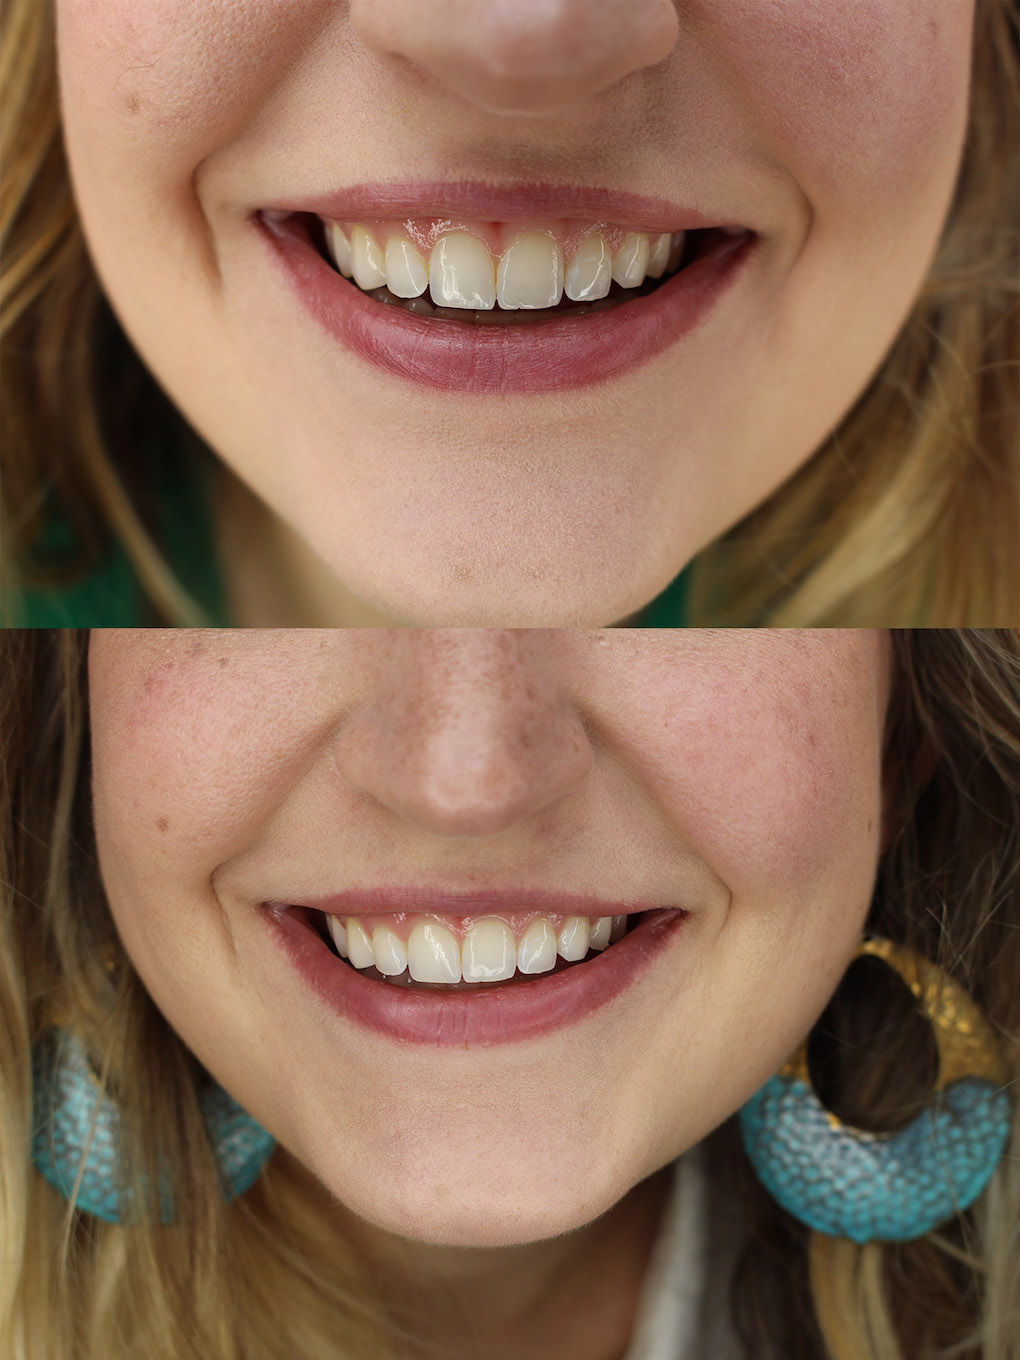 Teeth whitening, at home teeth whitening, whitening, beauty, Southern Style Diaries